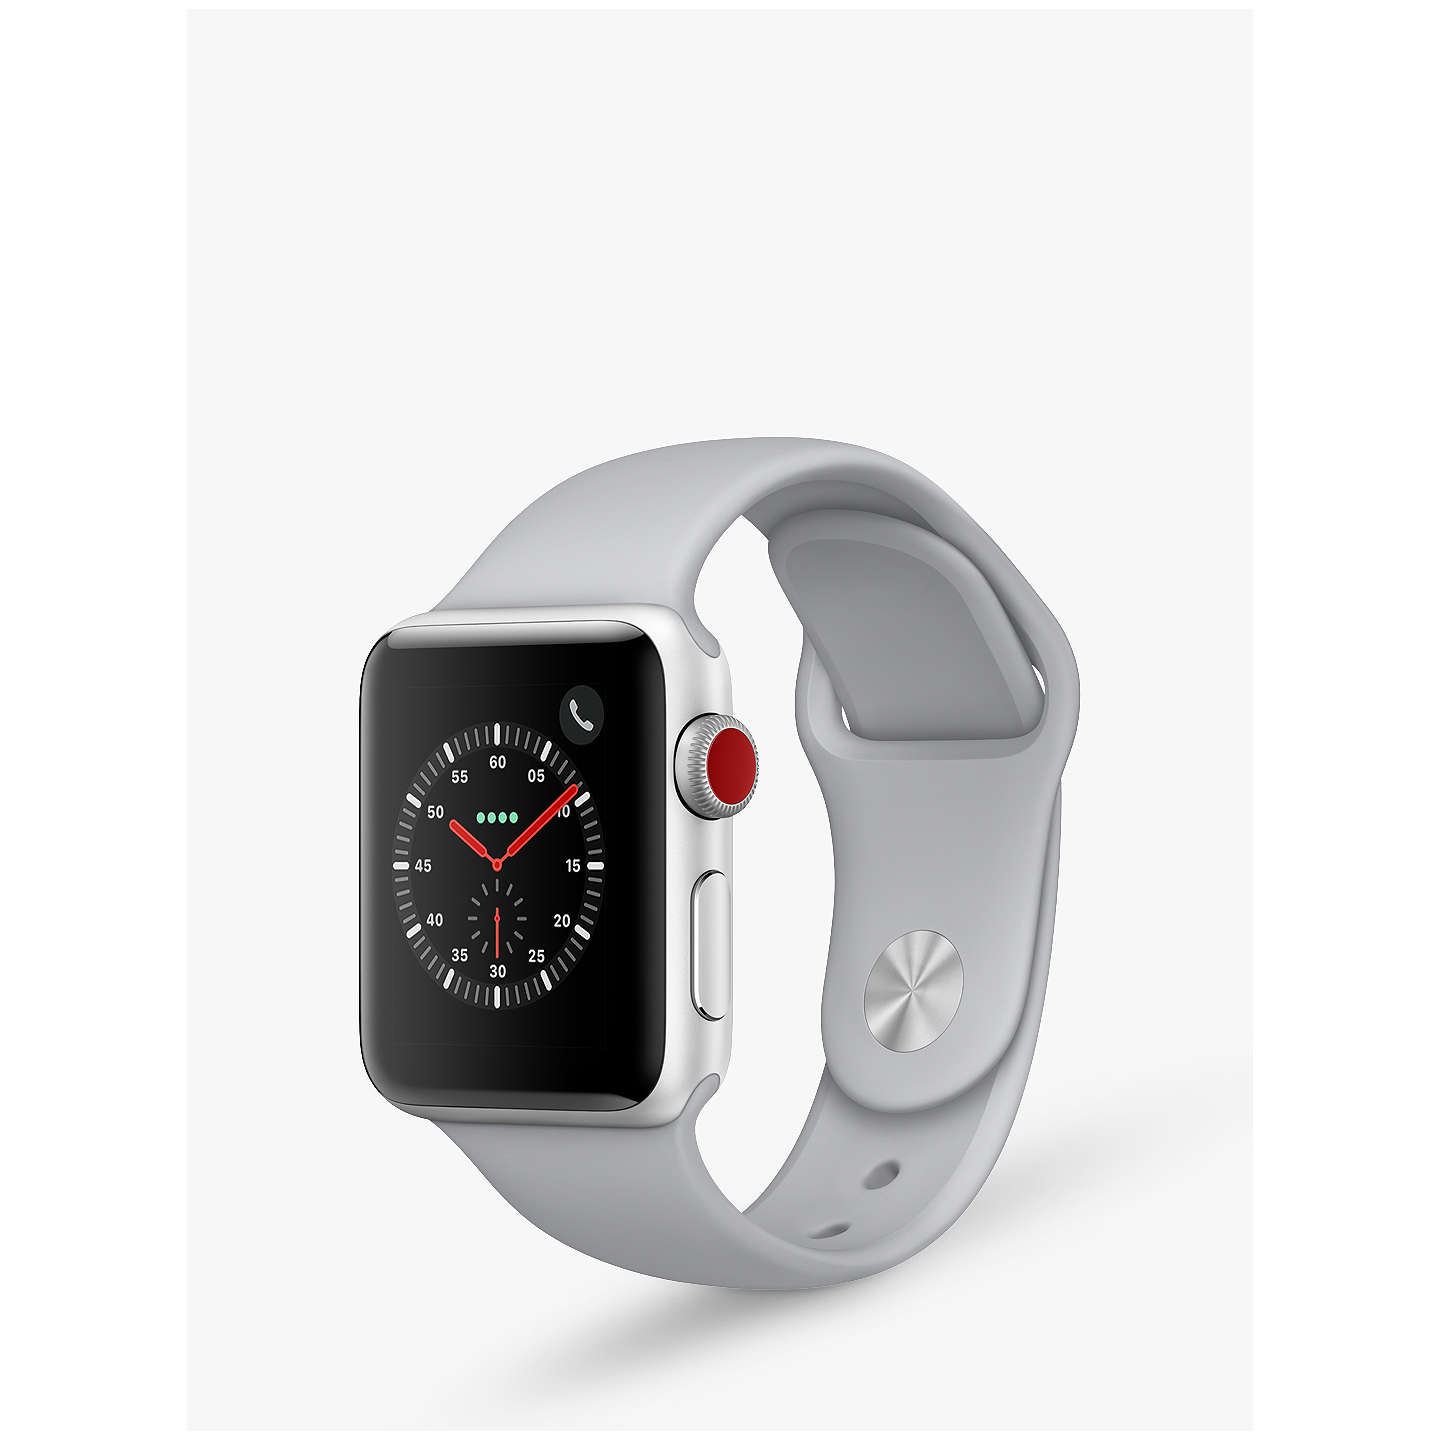 BuyApple Watch Series 3, GPS and Cellular, 38mm Silver Aluminium Case with Sport Band, Fog Online at johnlewis.com